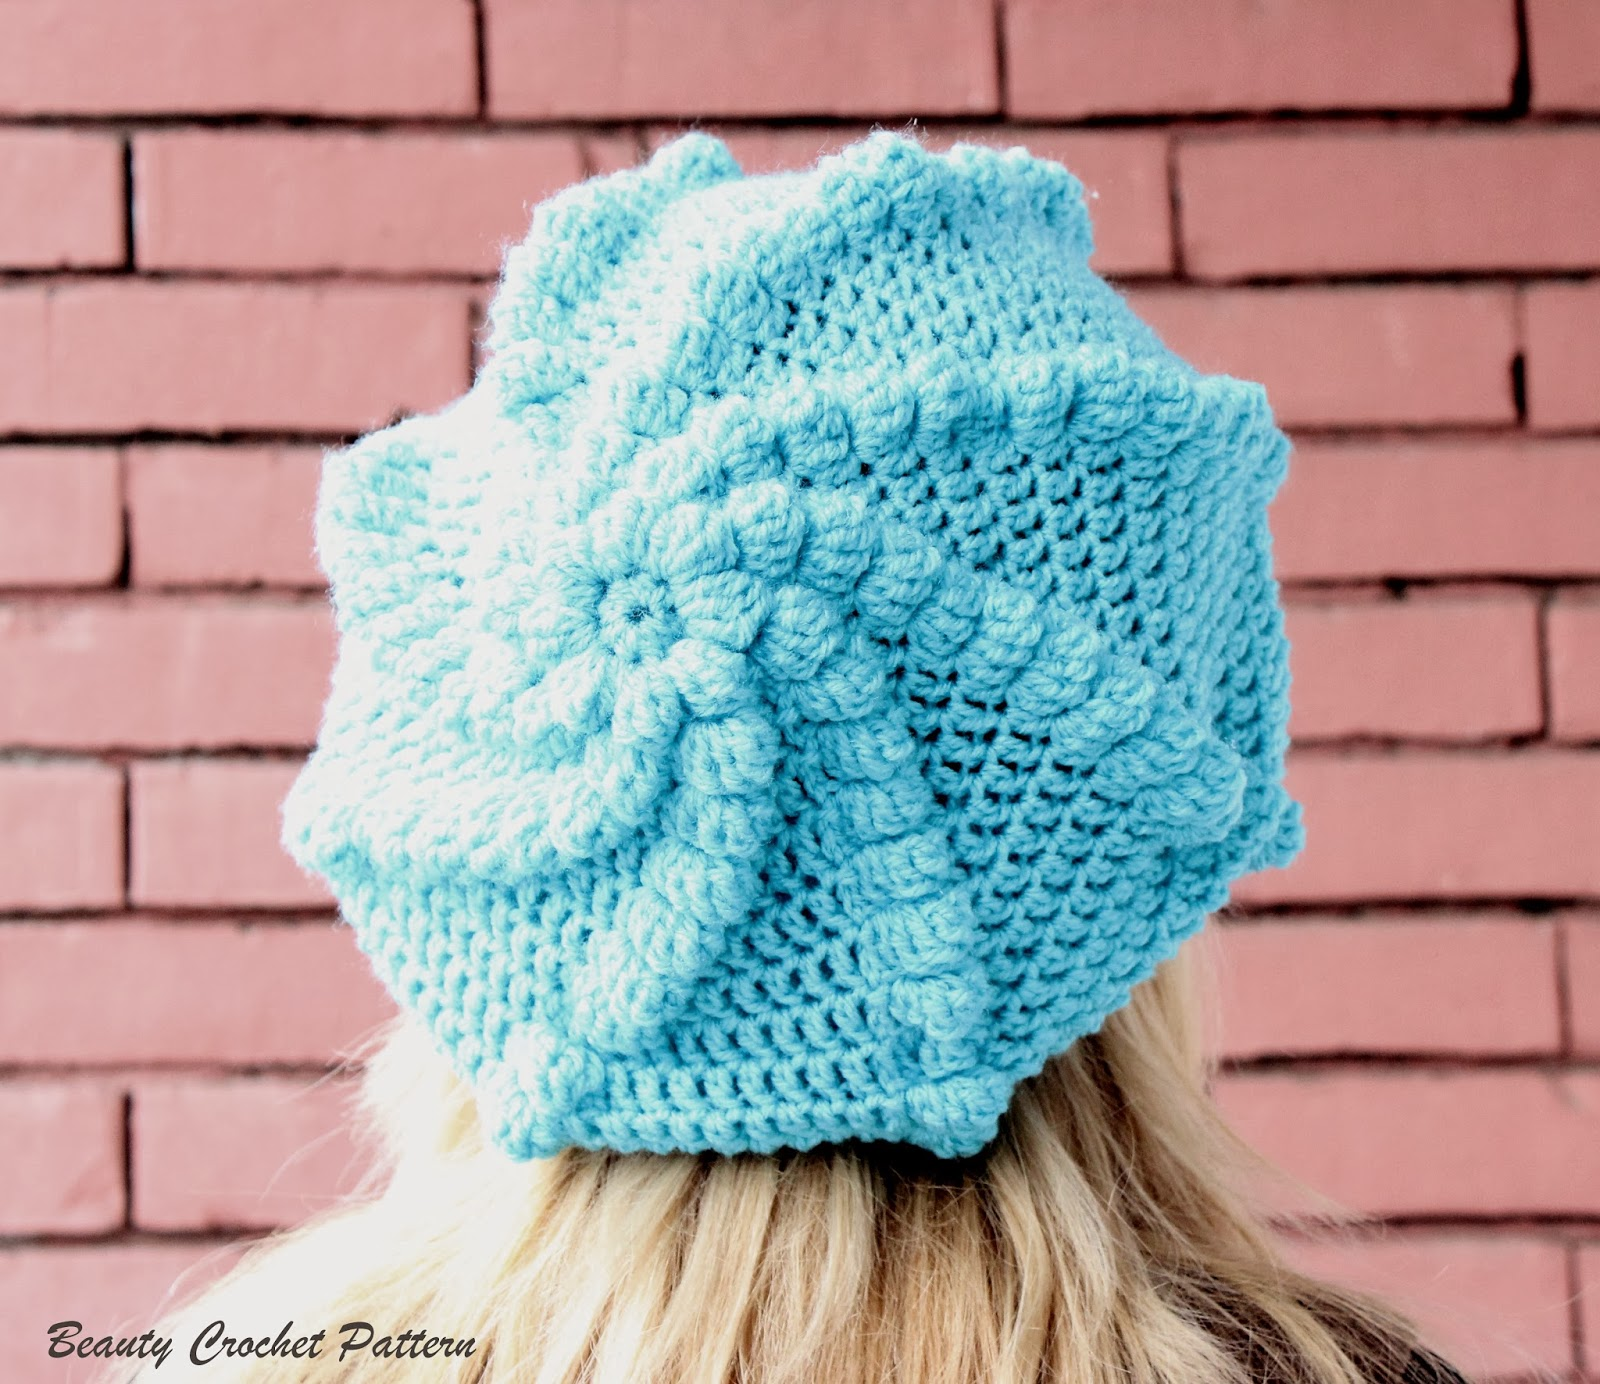 French Crochet Patterns : Beauty Crochet Pattern